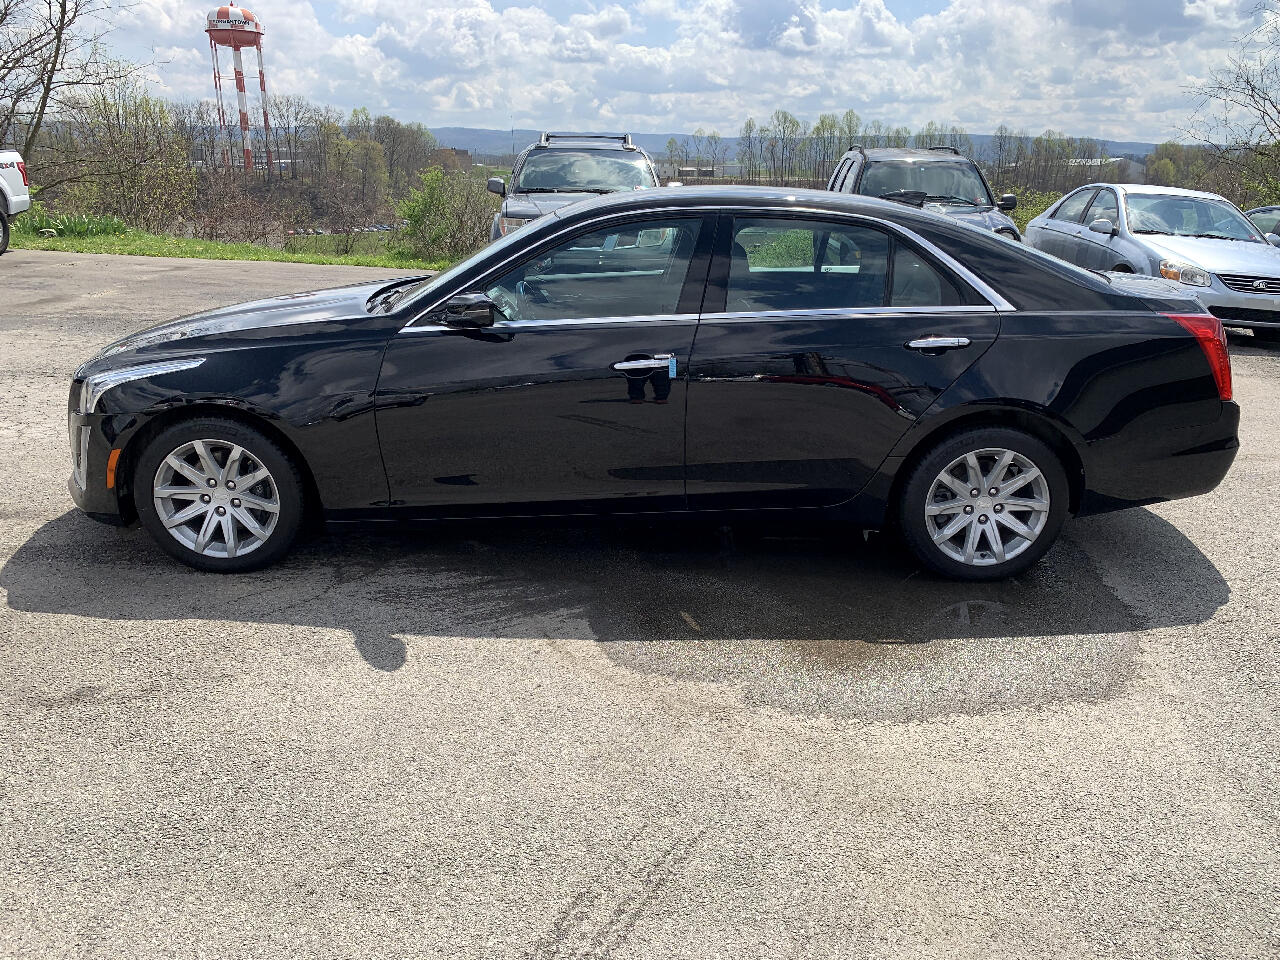 Cadillac CTS Sedan 4dr Sdn 2.0L Turbo AWD 2015